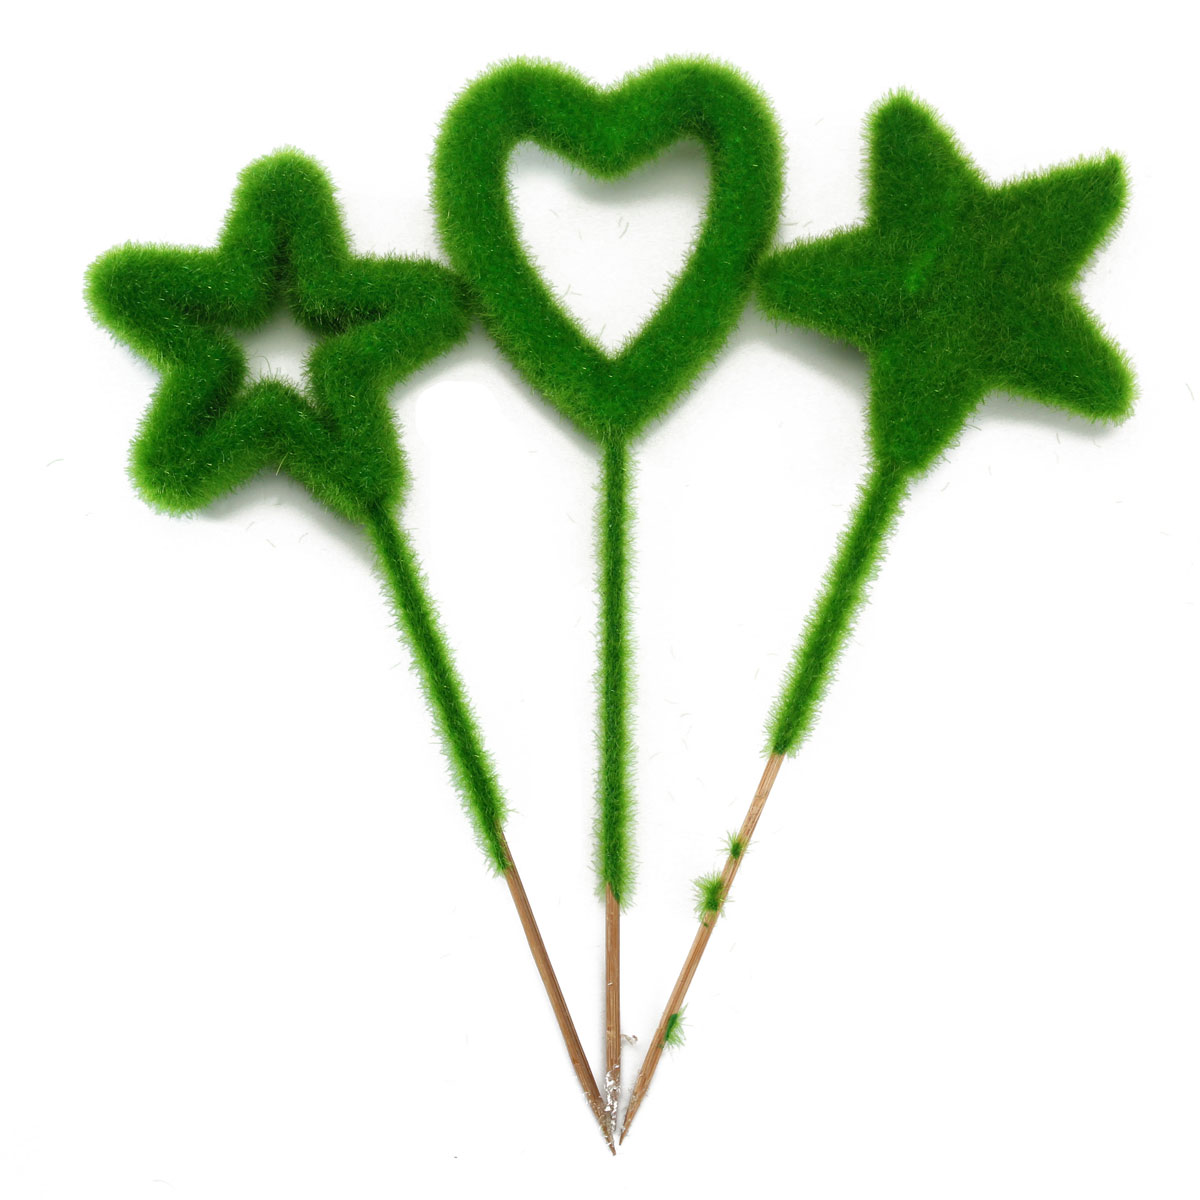 hot garden artificial flowers cheap fake green plant star heart shaped ornament home desktop decoration